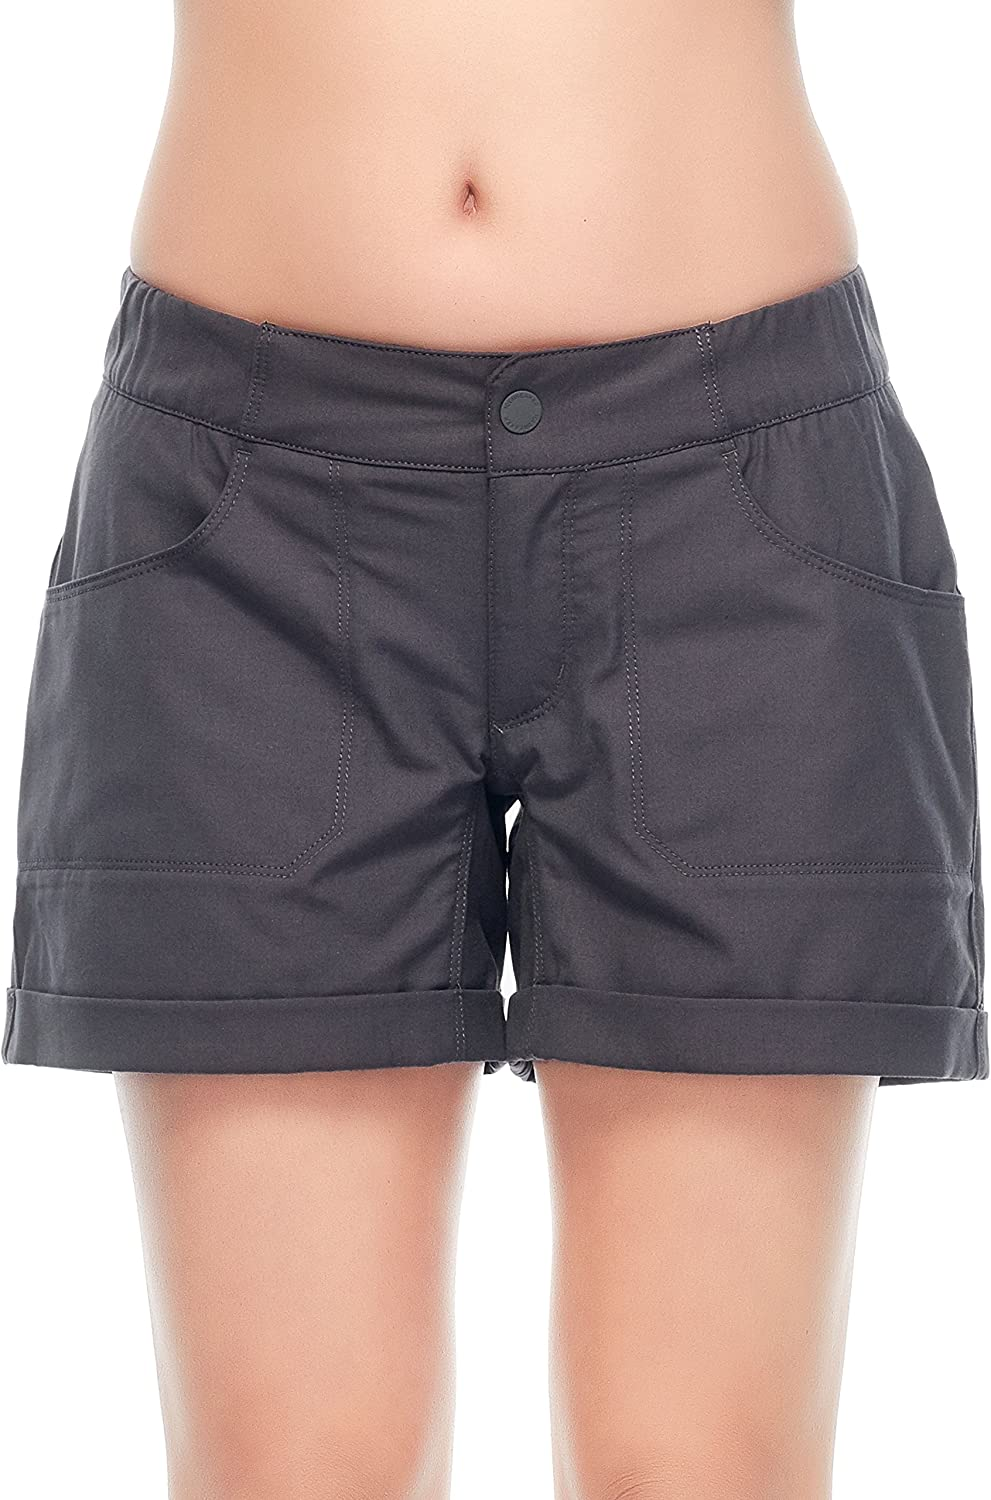 Merino Wool Icebreaker Merino Womens Connection Shorts